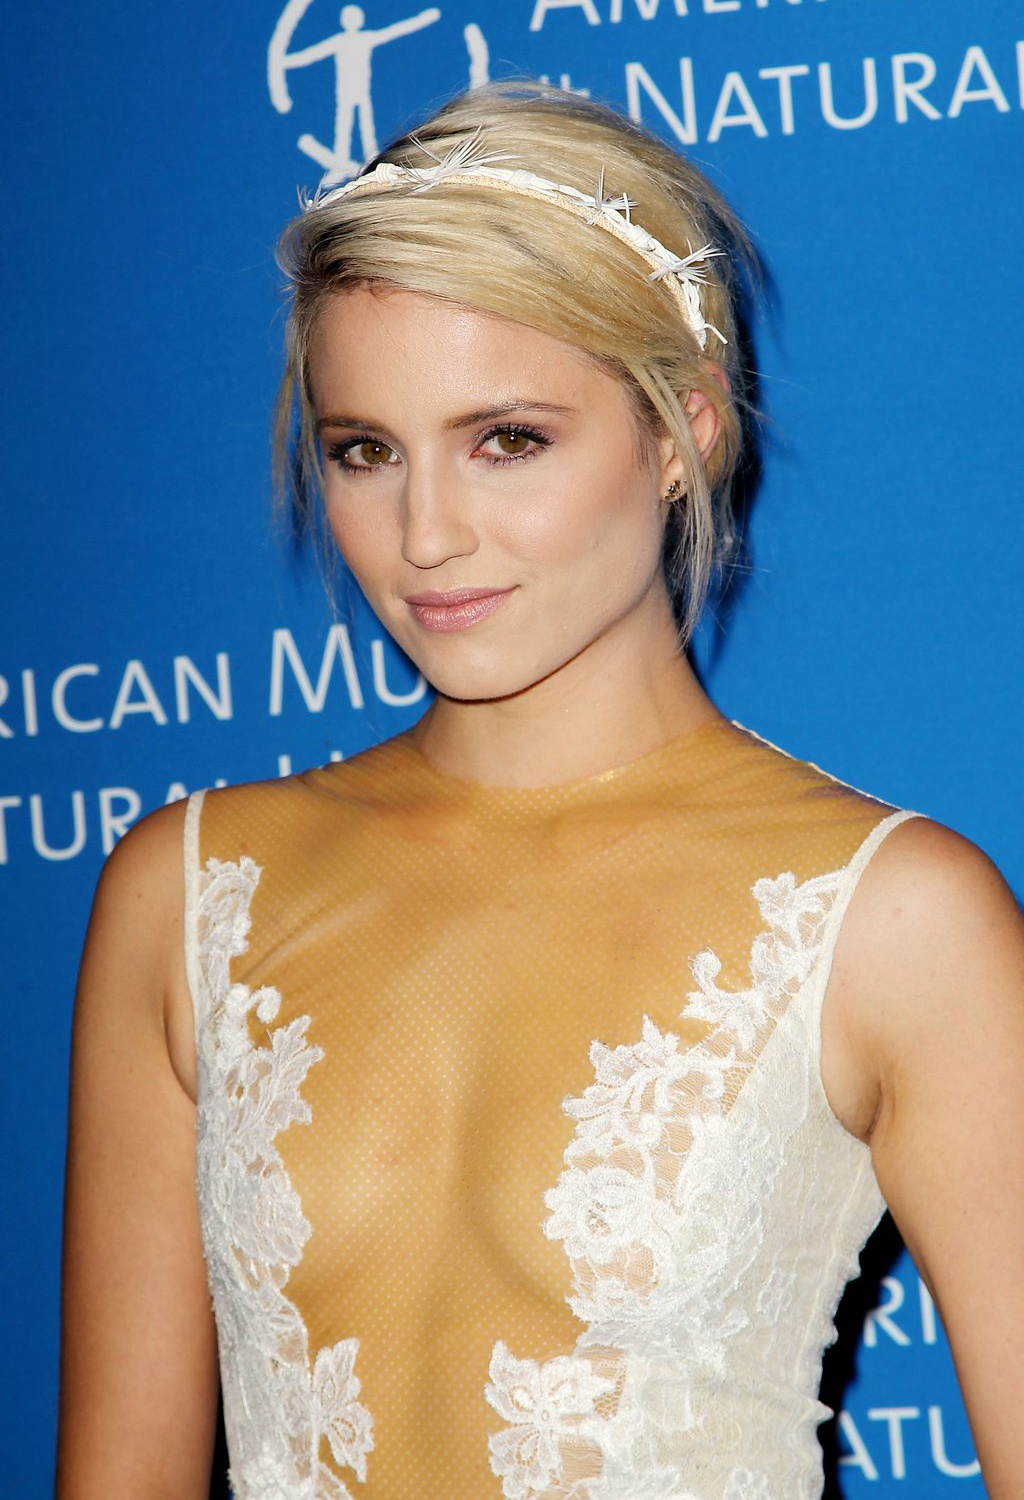 Dianna Agron Photos: HD Picture of Dianna Agron - Filmnstars